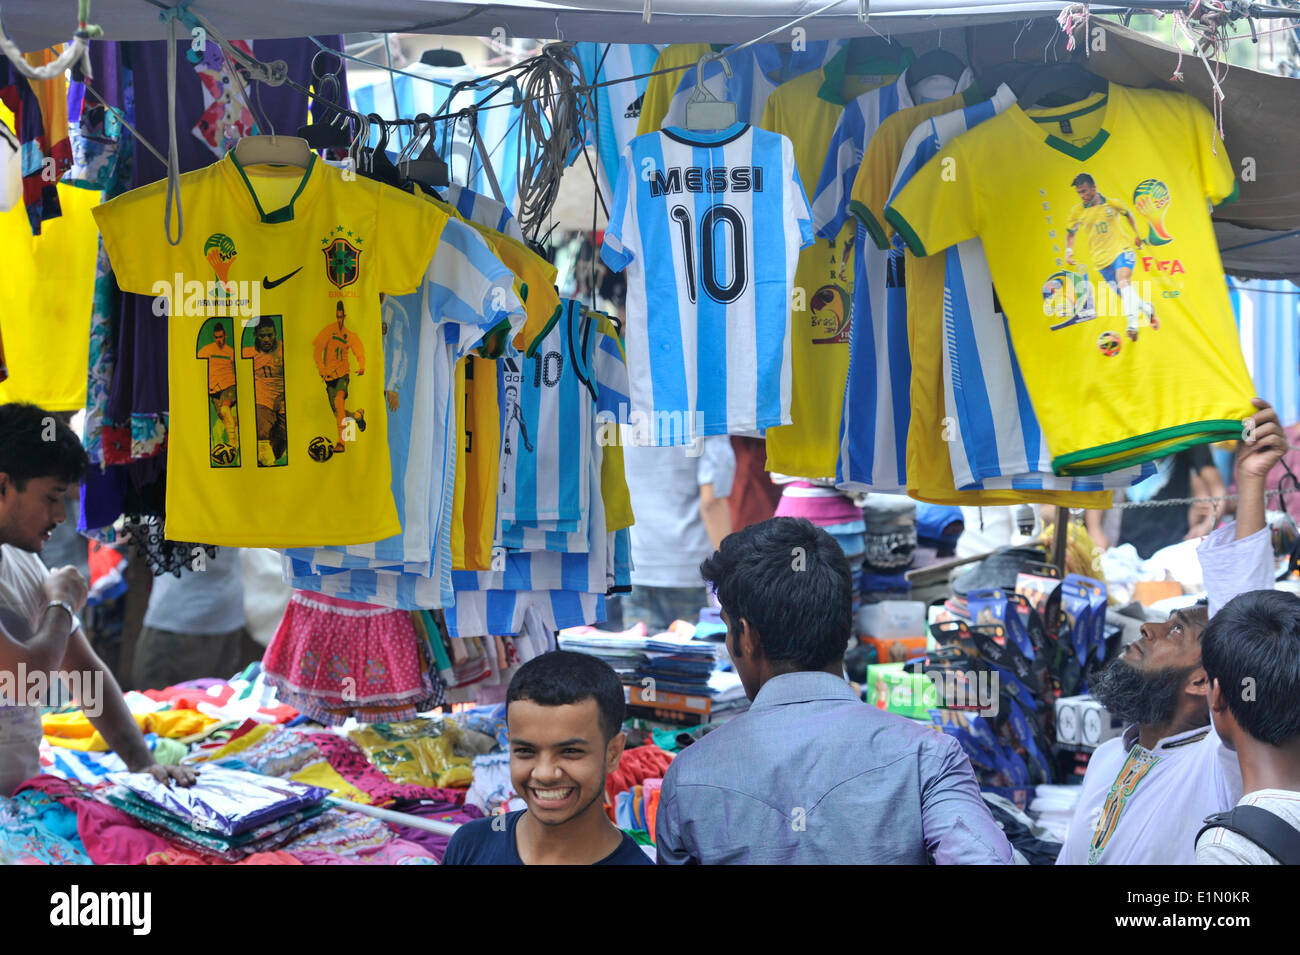 A Jersey football shop. Soccer World Cup 2014 in Brazil has been a hit on  Bangladesh s ready-made dress makers as they bagged about 1 billion U.S.  dollars ... 275b62f3572c